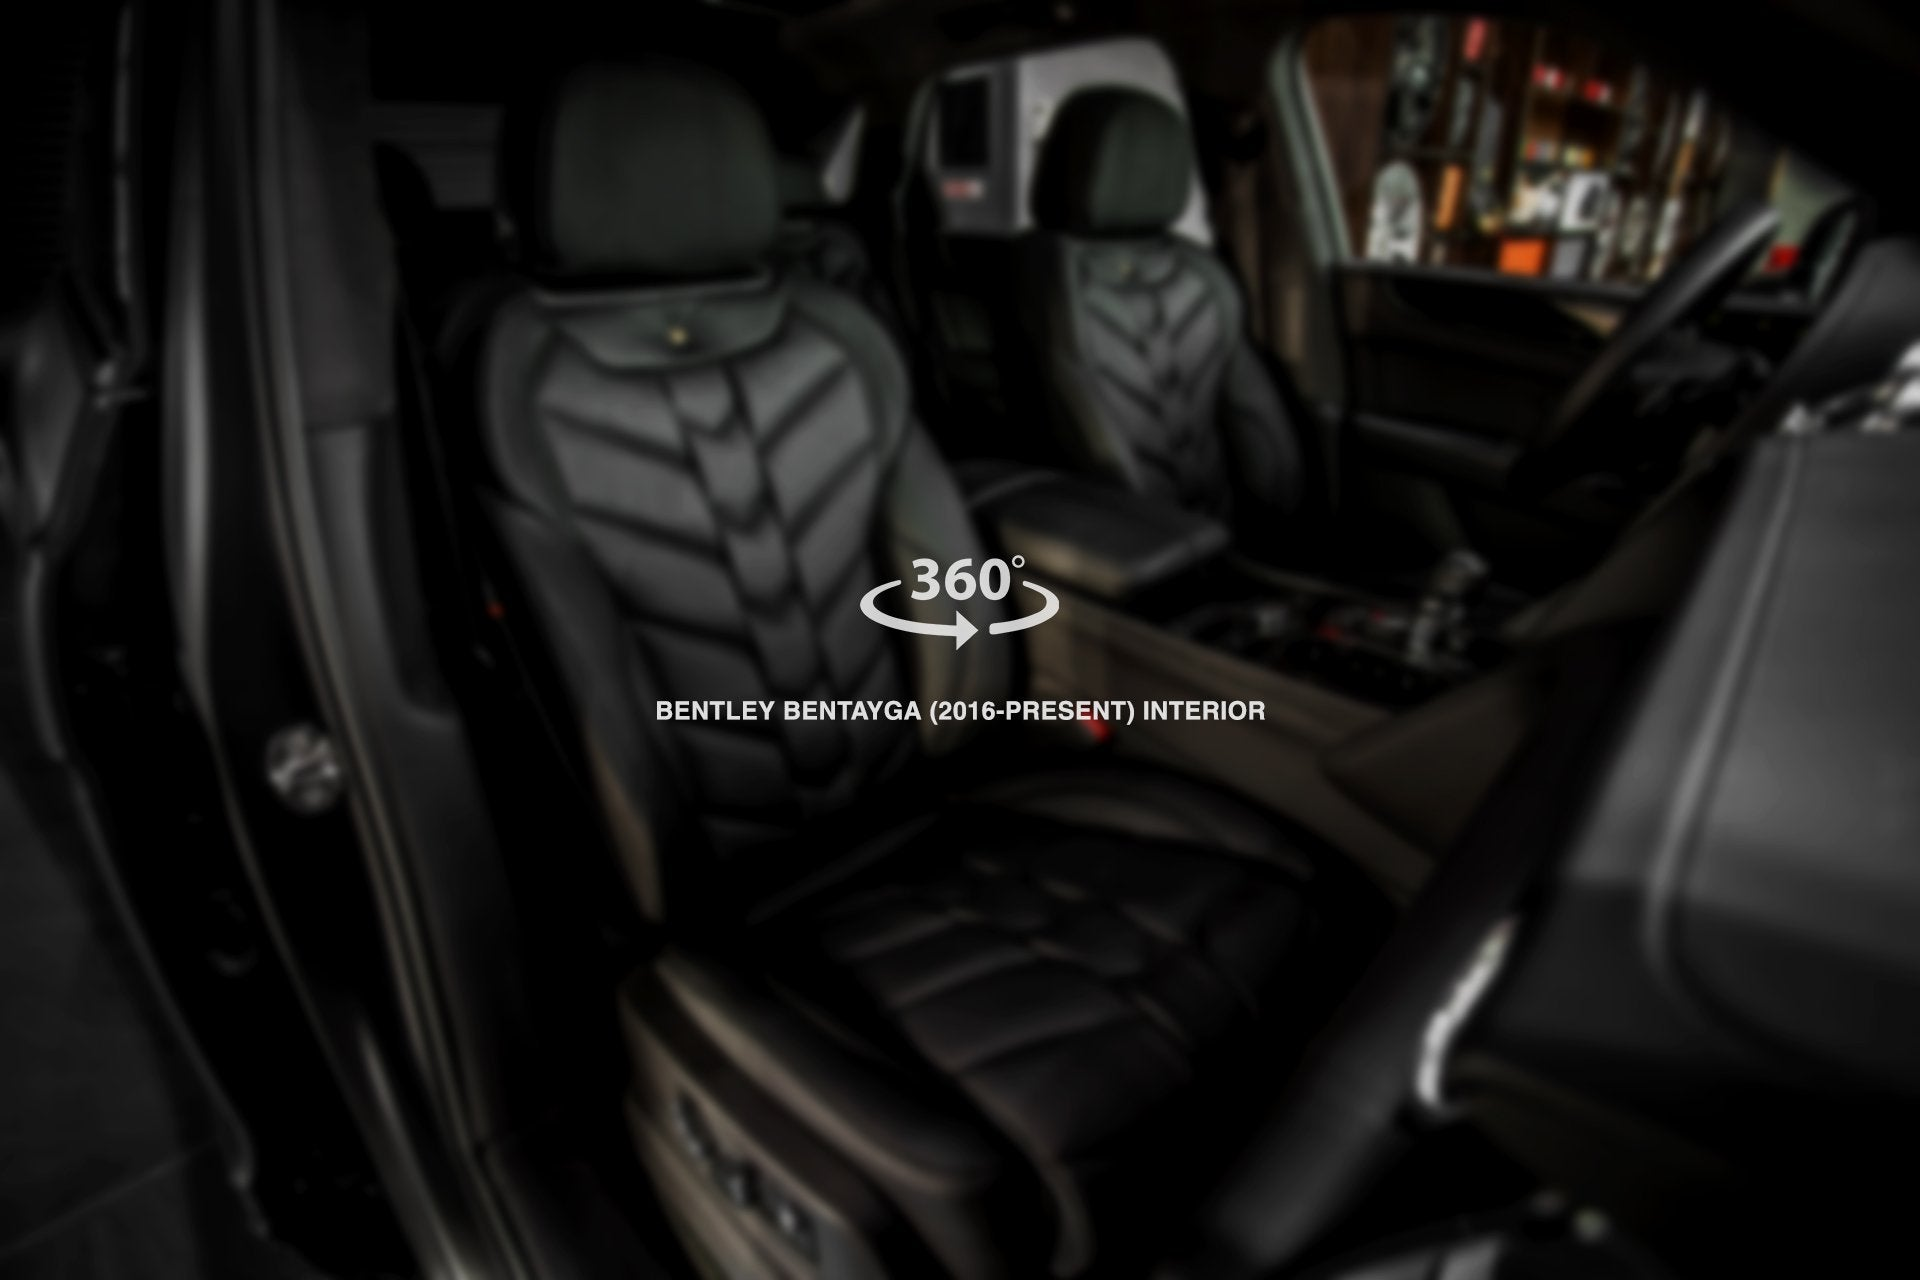 Bentley Bentayga (2016-Present) comfort Interior - 5 Seats